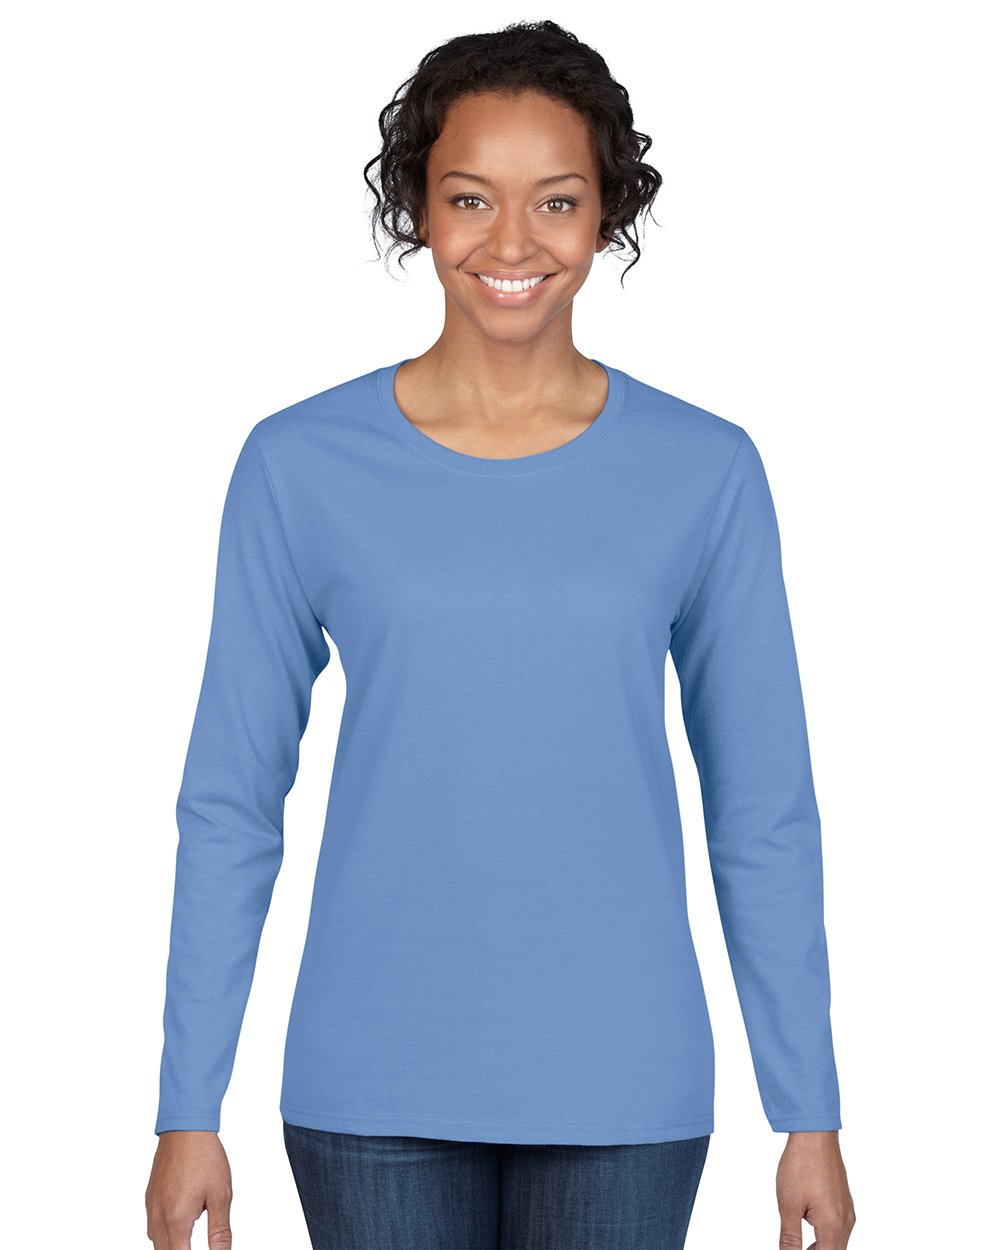 Gildan 5400L     Heavy Cotton™    Adult Missy Fit Ladies Long Sleeve T-Shirt    5.3 oz. 100% Cotton